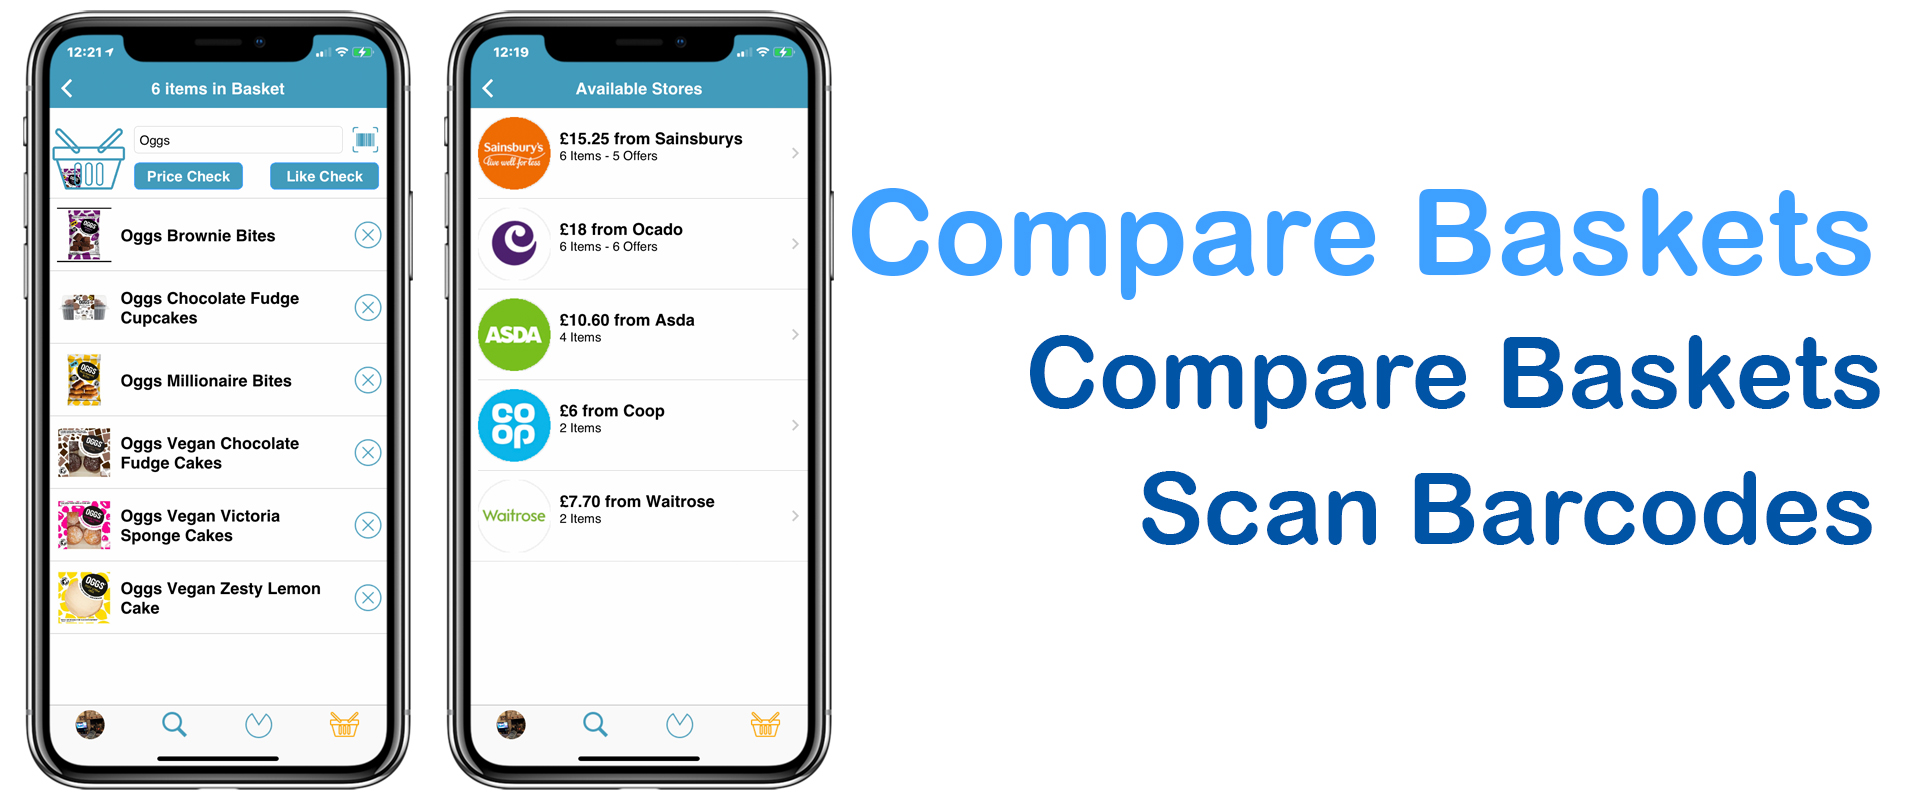 Compare full shopping baskets